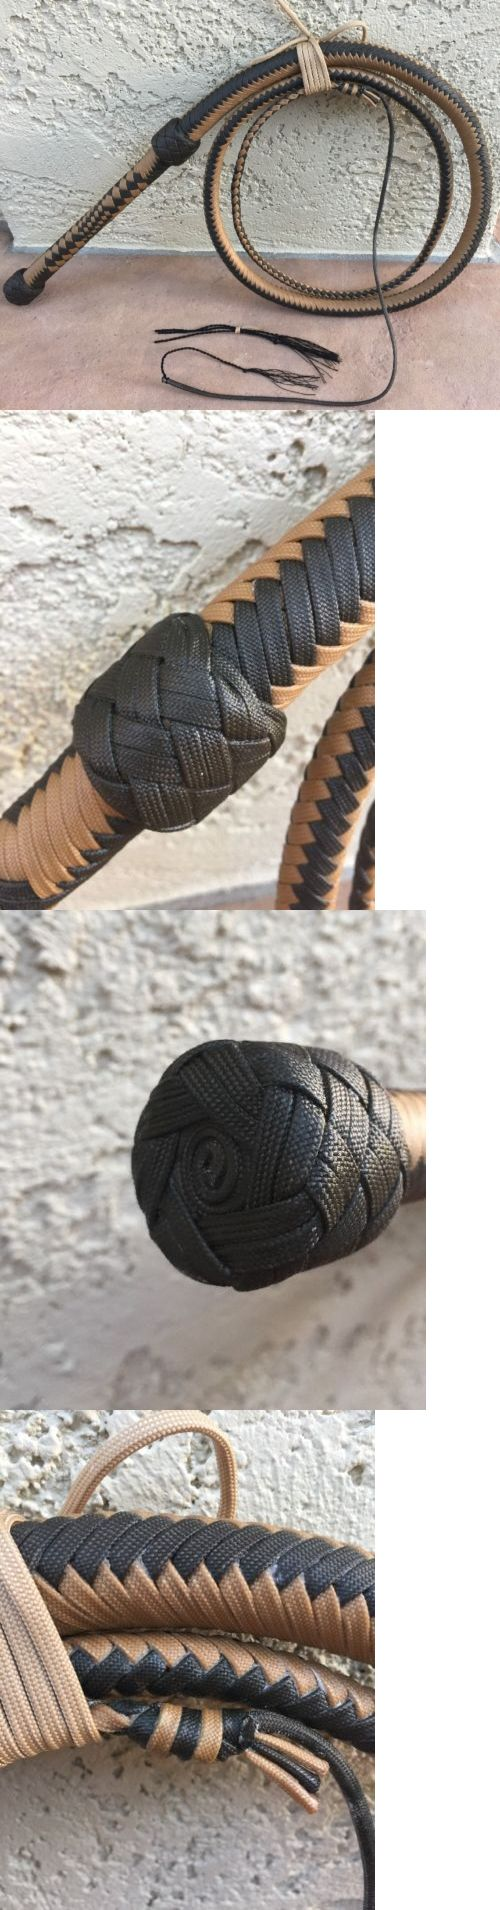 Other Training Equipment 183426: 6 Foot Waxed Dark Brown And Tan Paracord, Nylon Bullwhip With Extra Crackers -> BUY IT NOW ONLY: $160 on eBay!